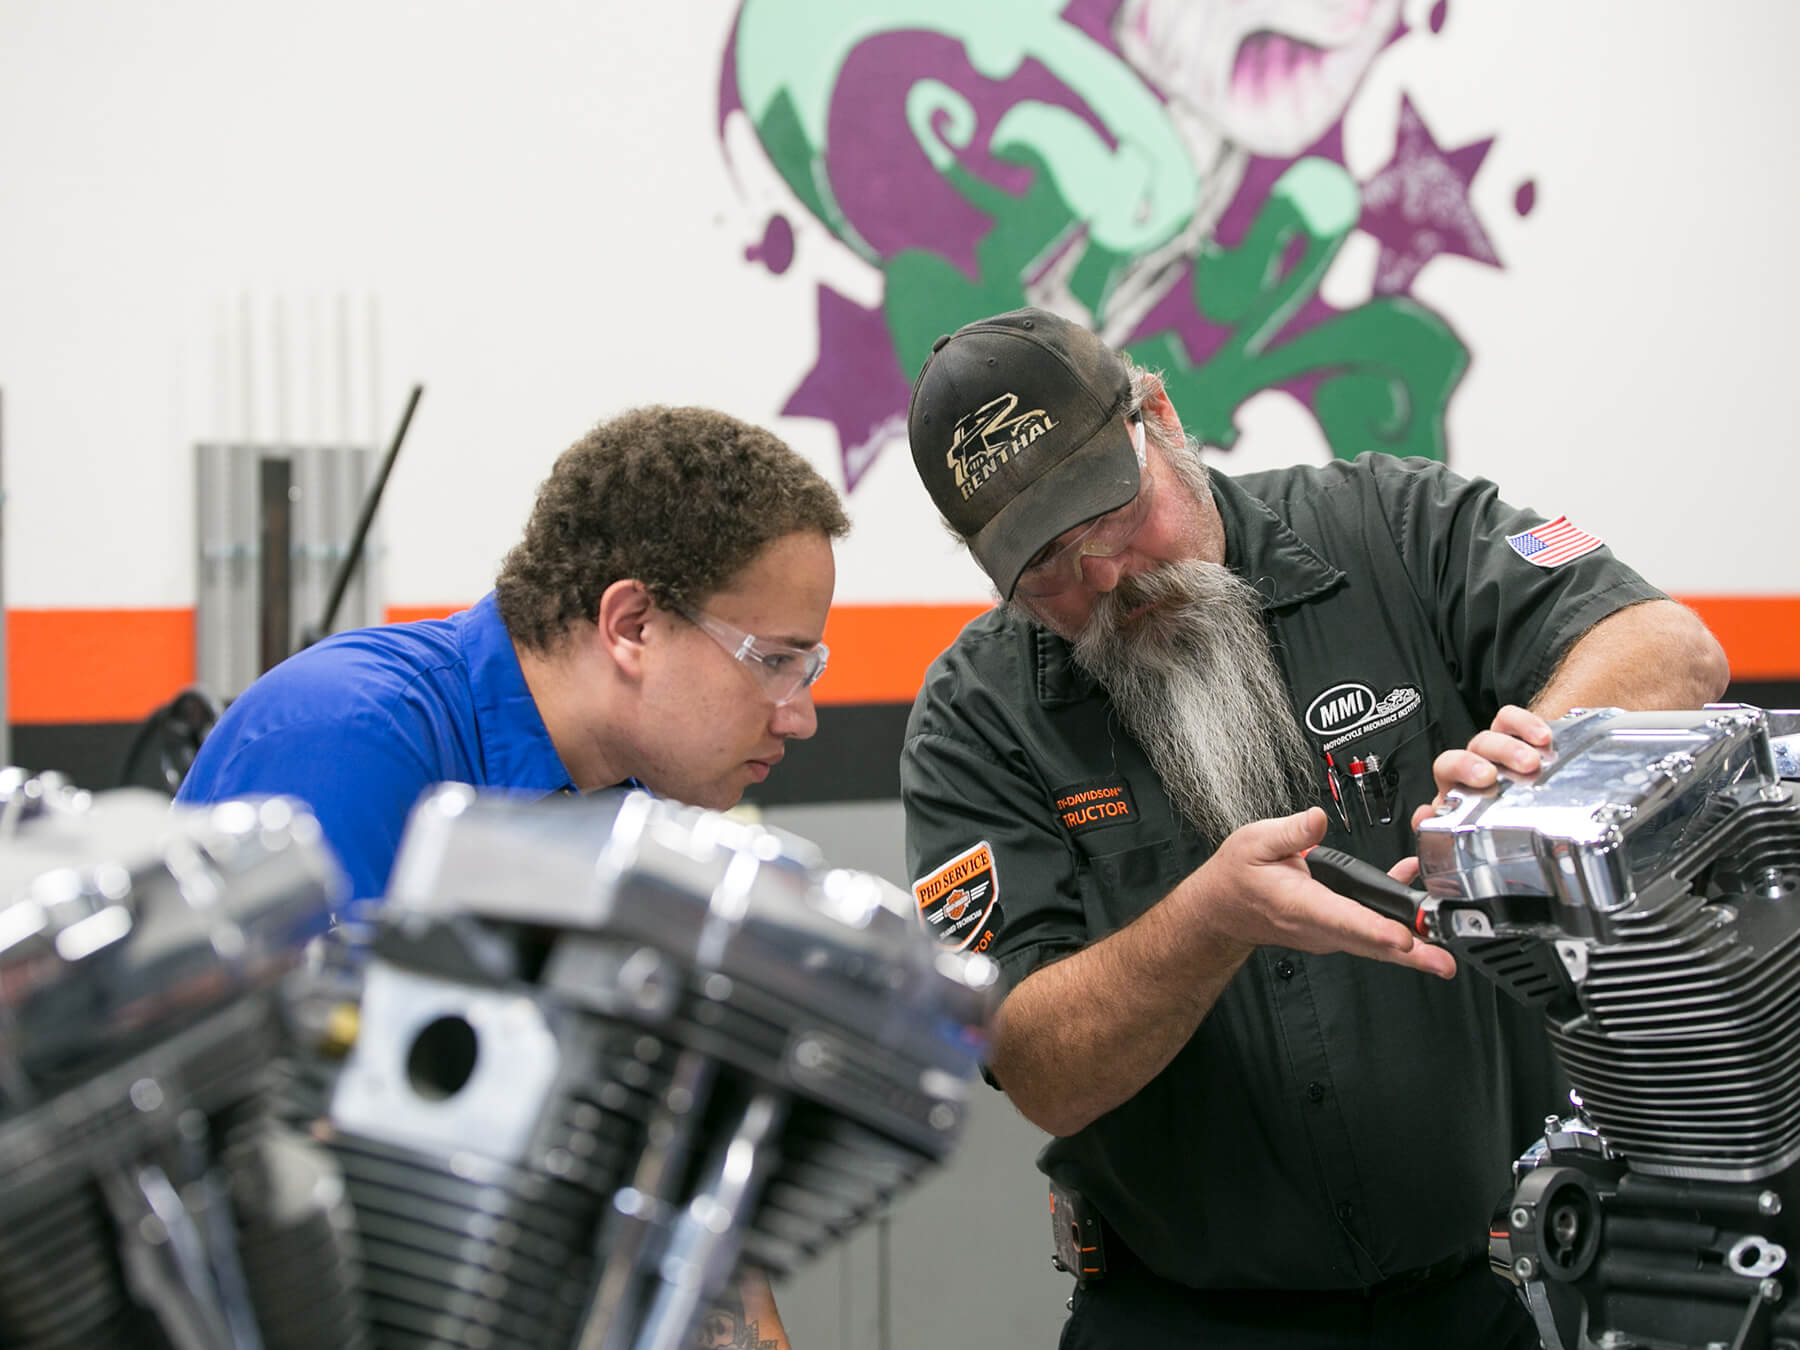 MMI. instructor showing a student an engine